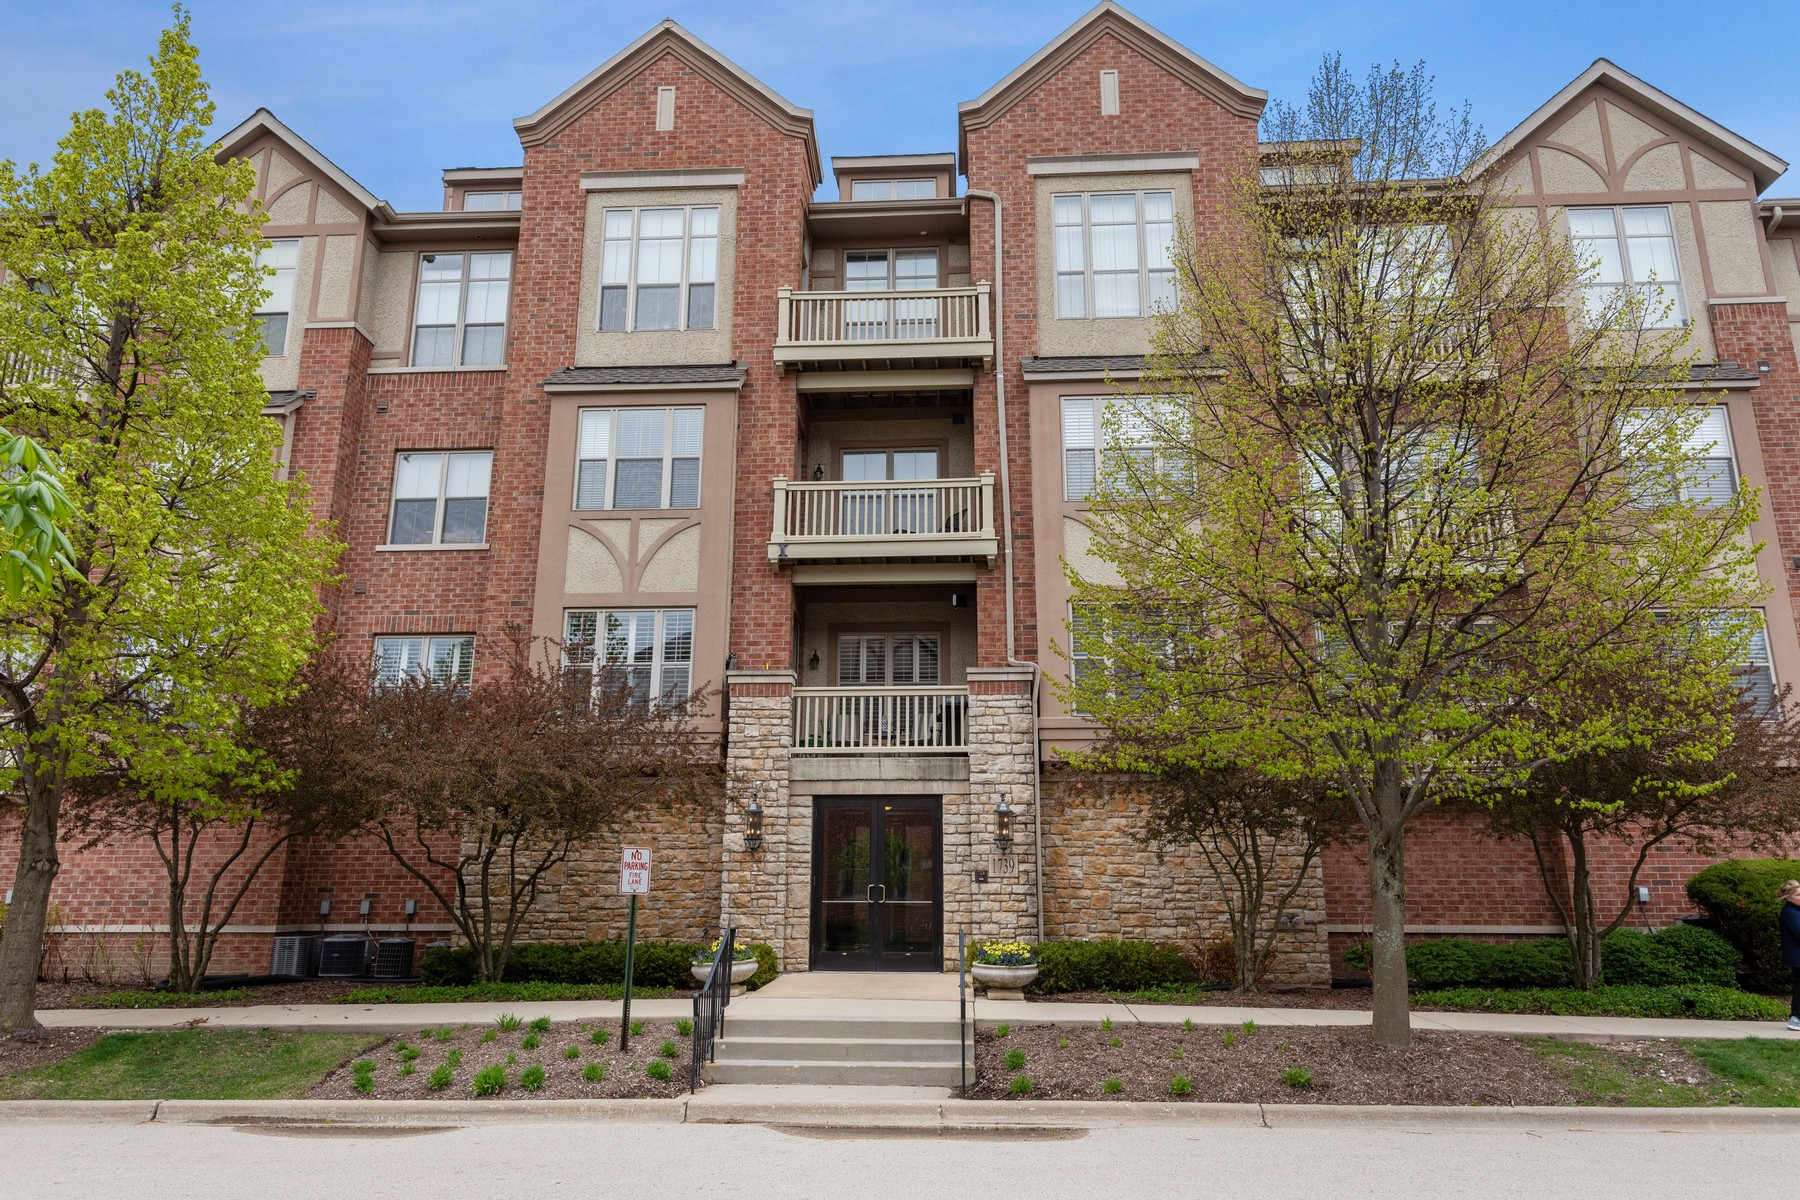 Кондоминиум для того Продажа на Luxurious 2-Bedroom Light-Filled Condo 1739 Tudor Lane Unit 103 Northbrook, Иллинойс 60062 Соединенные Штаты